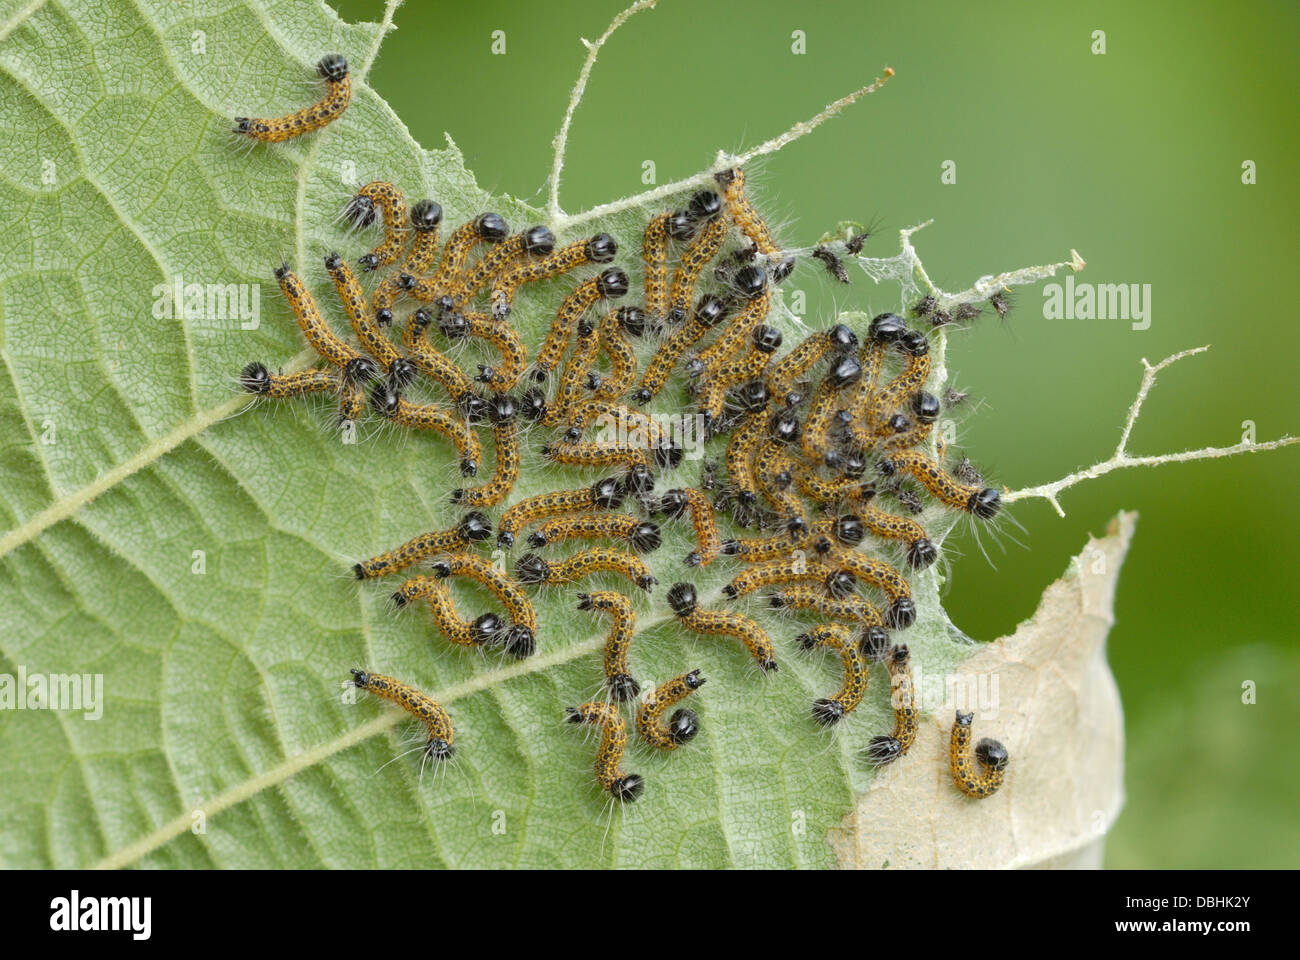 Buff-tip caterpillars (Phalera bucephala) on a Hazel leaf - Stock Image